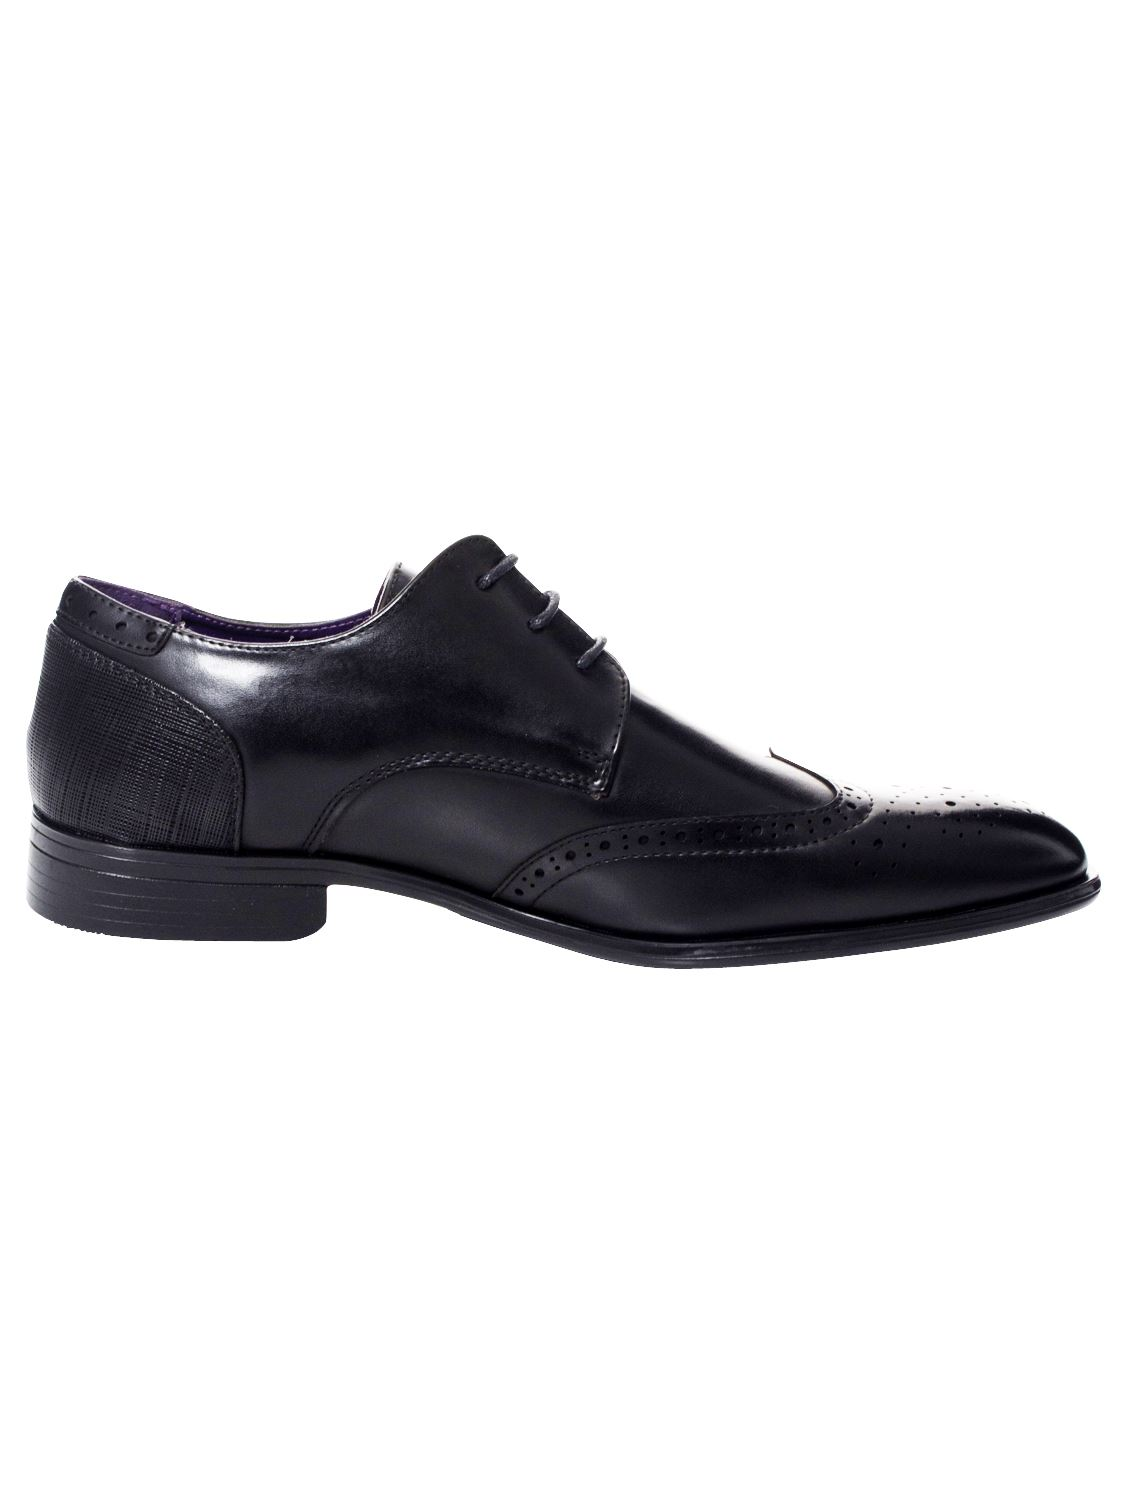 Mens-Faux-Leather-Shoes-Smart-Formal-Wedding-Office-Lace-Up-Designer-Brogues thumbnail 18